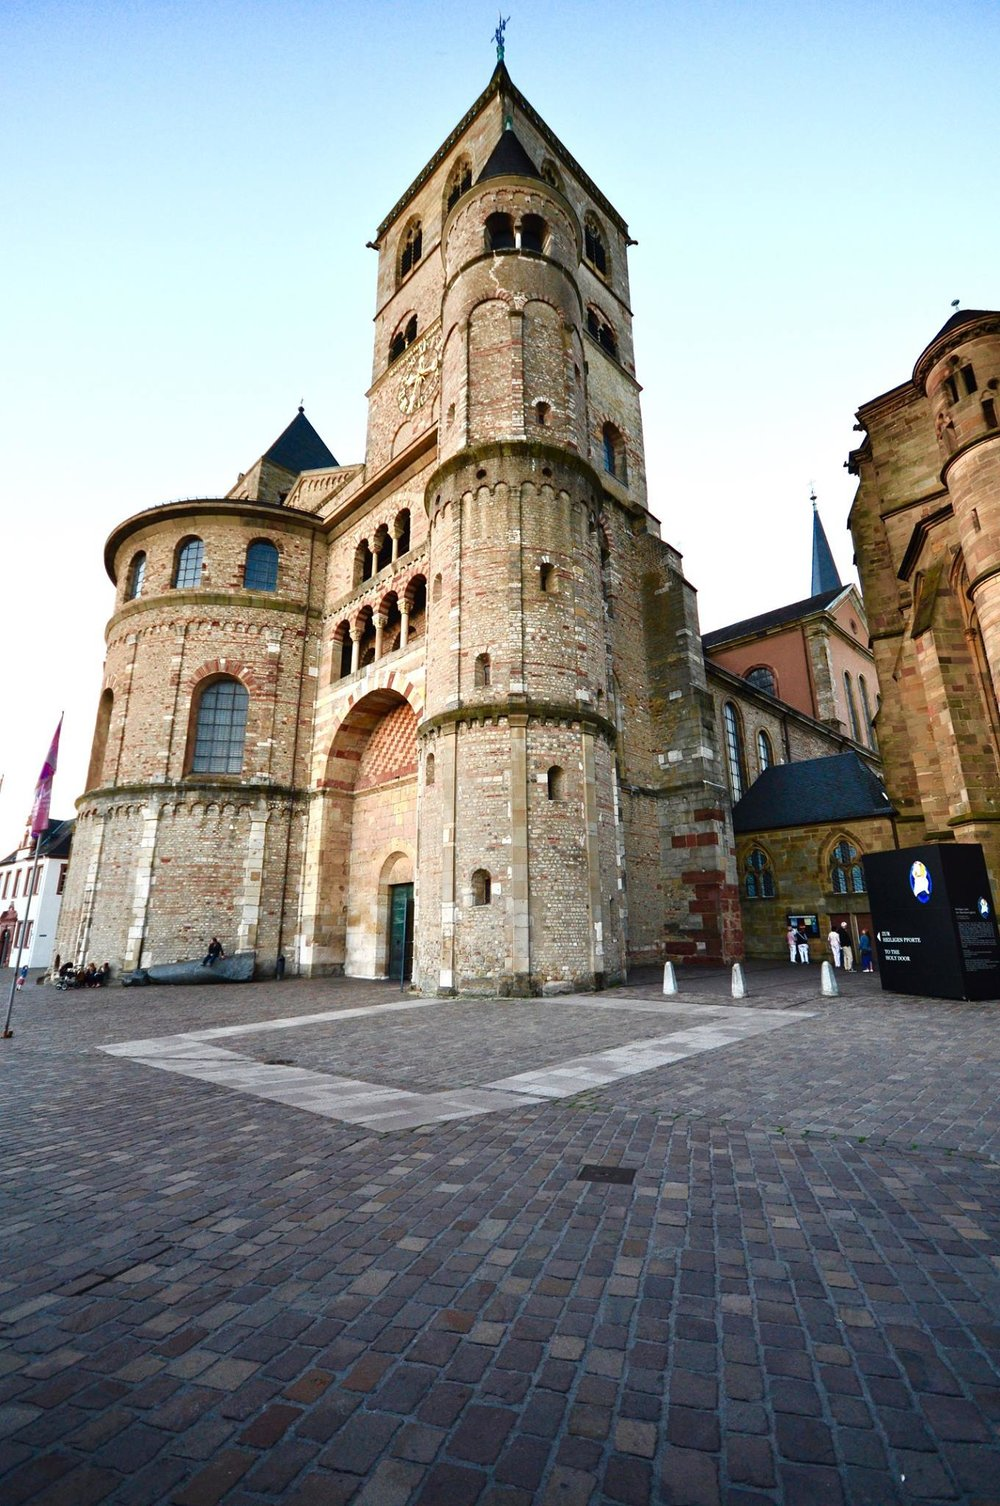 TRIER: Germany's oldest city